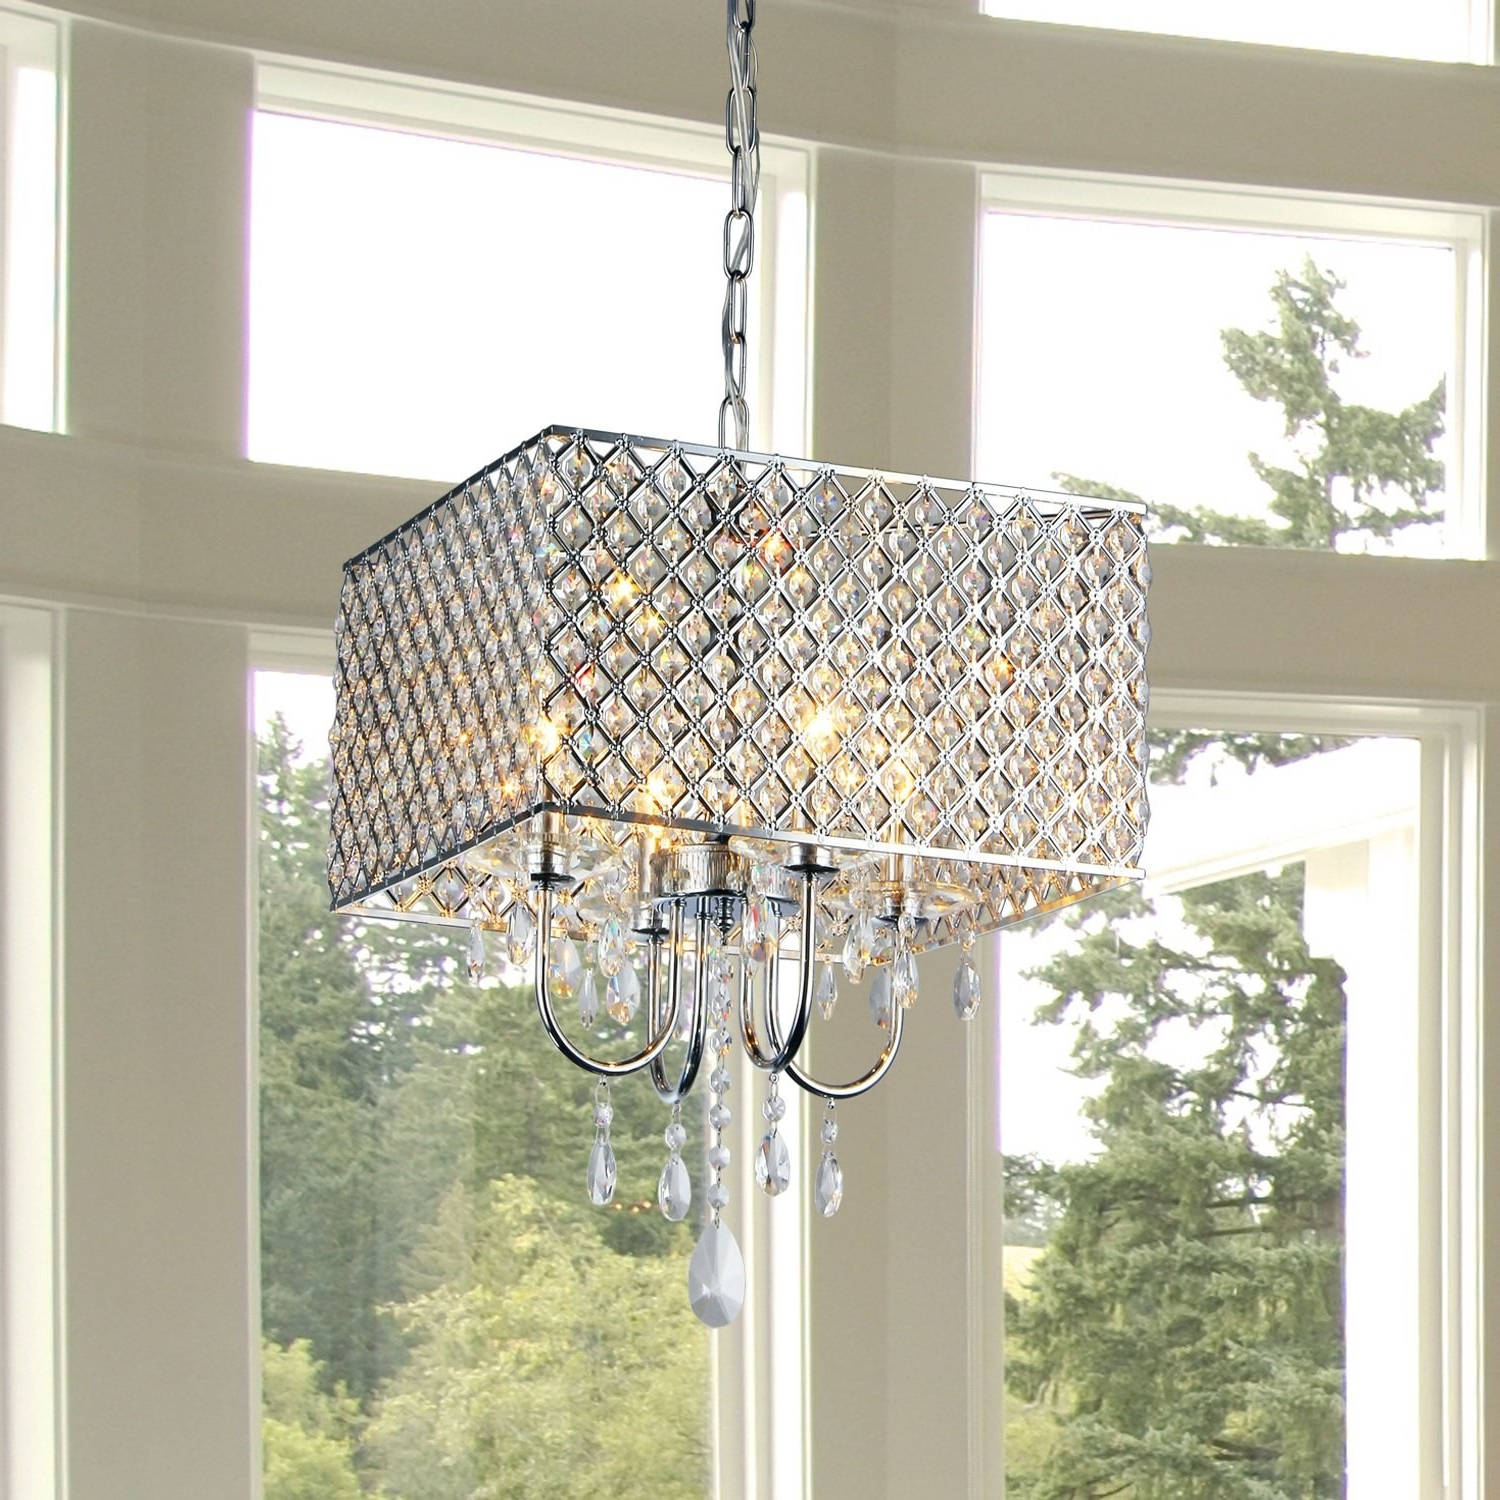 2020 Garrin Square 4 Light Crystal Chandelier With Regard To Albano 4 Light Crystal Chandeliers (View 1 of 20)